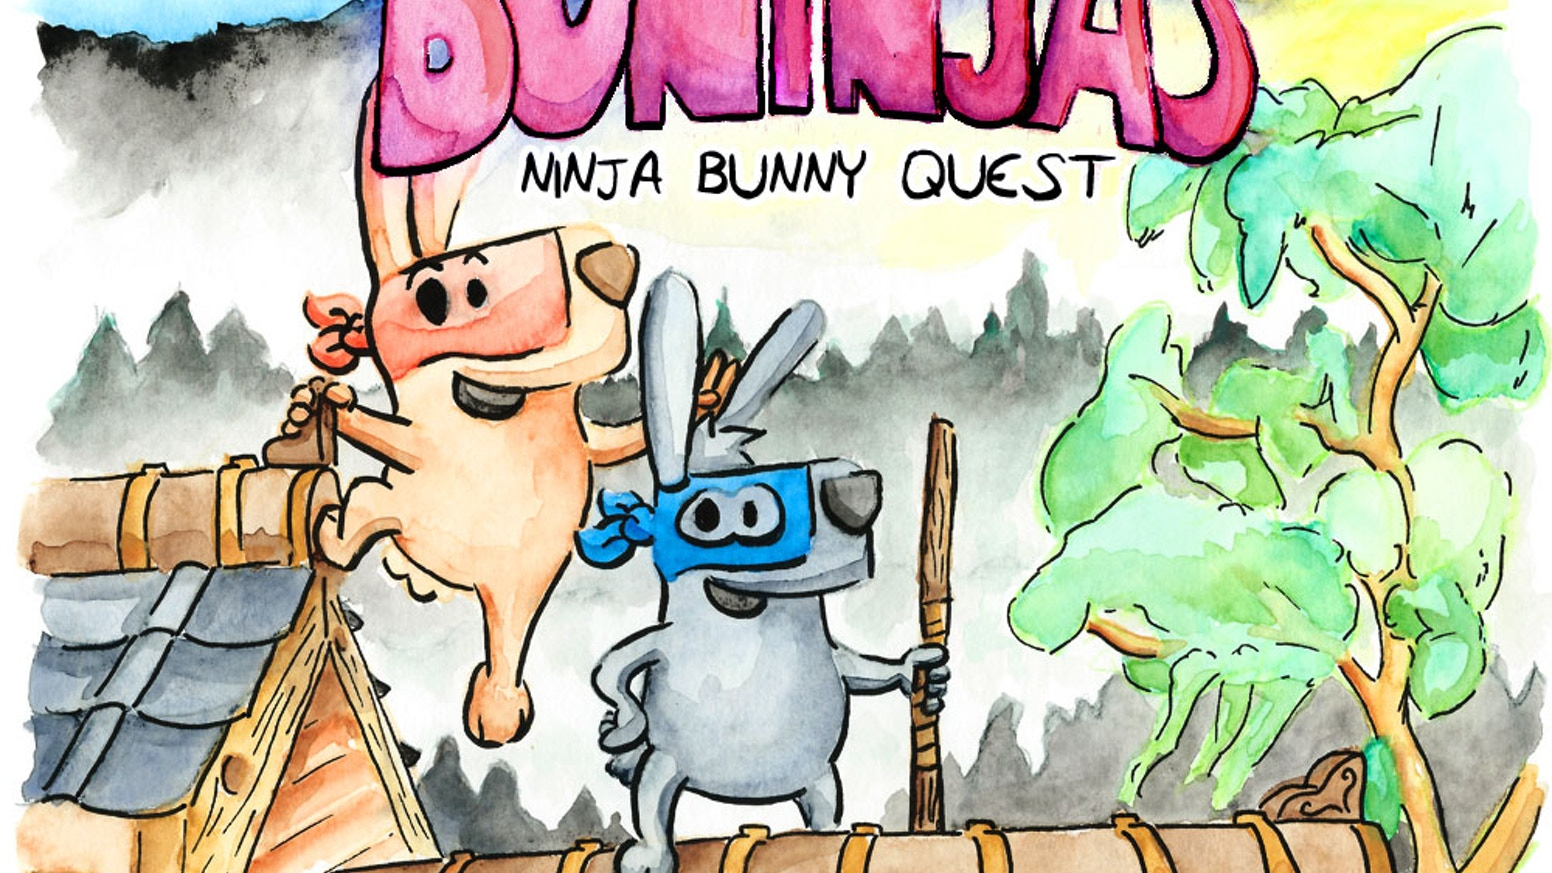 A kids book written by a kid, illustrated by her father. Join the silly, fun and random adventure as two bunnies learn to be ninjas.